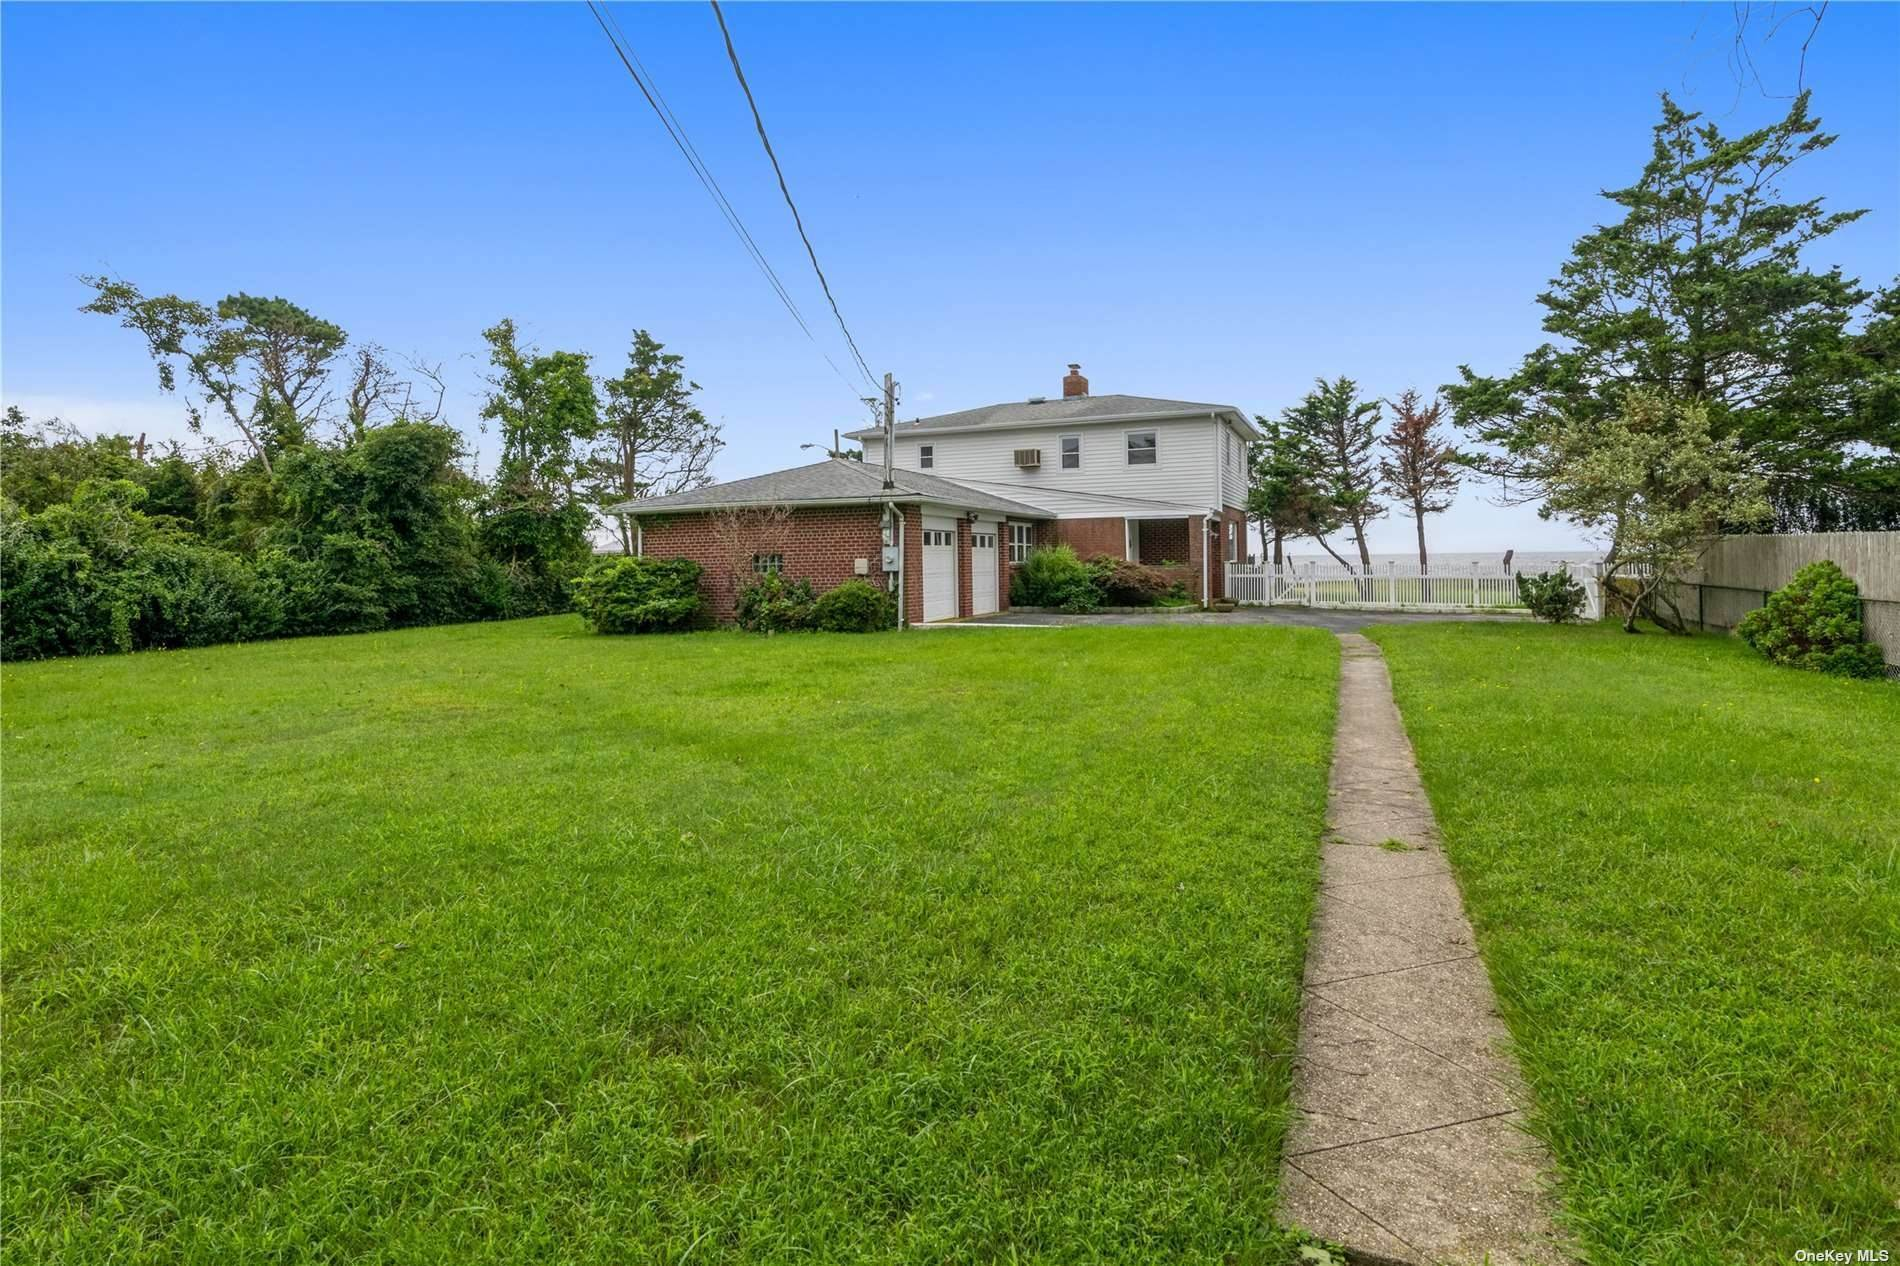 Residential for Sale at 2 Fenimore Road Bayport, New York 11705 United States